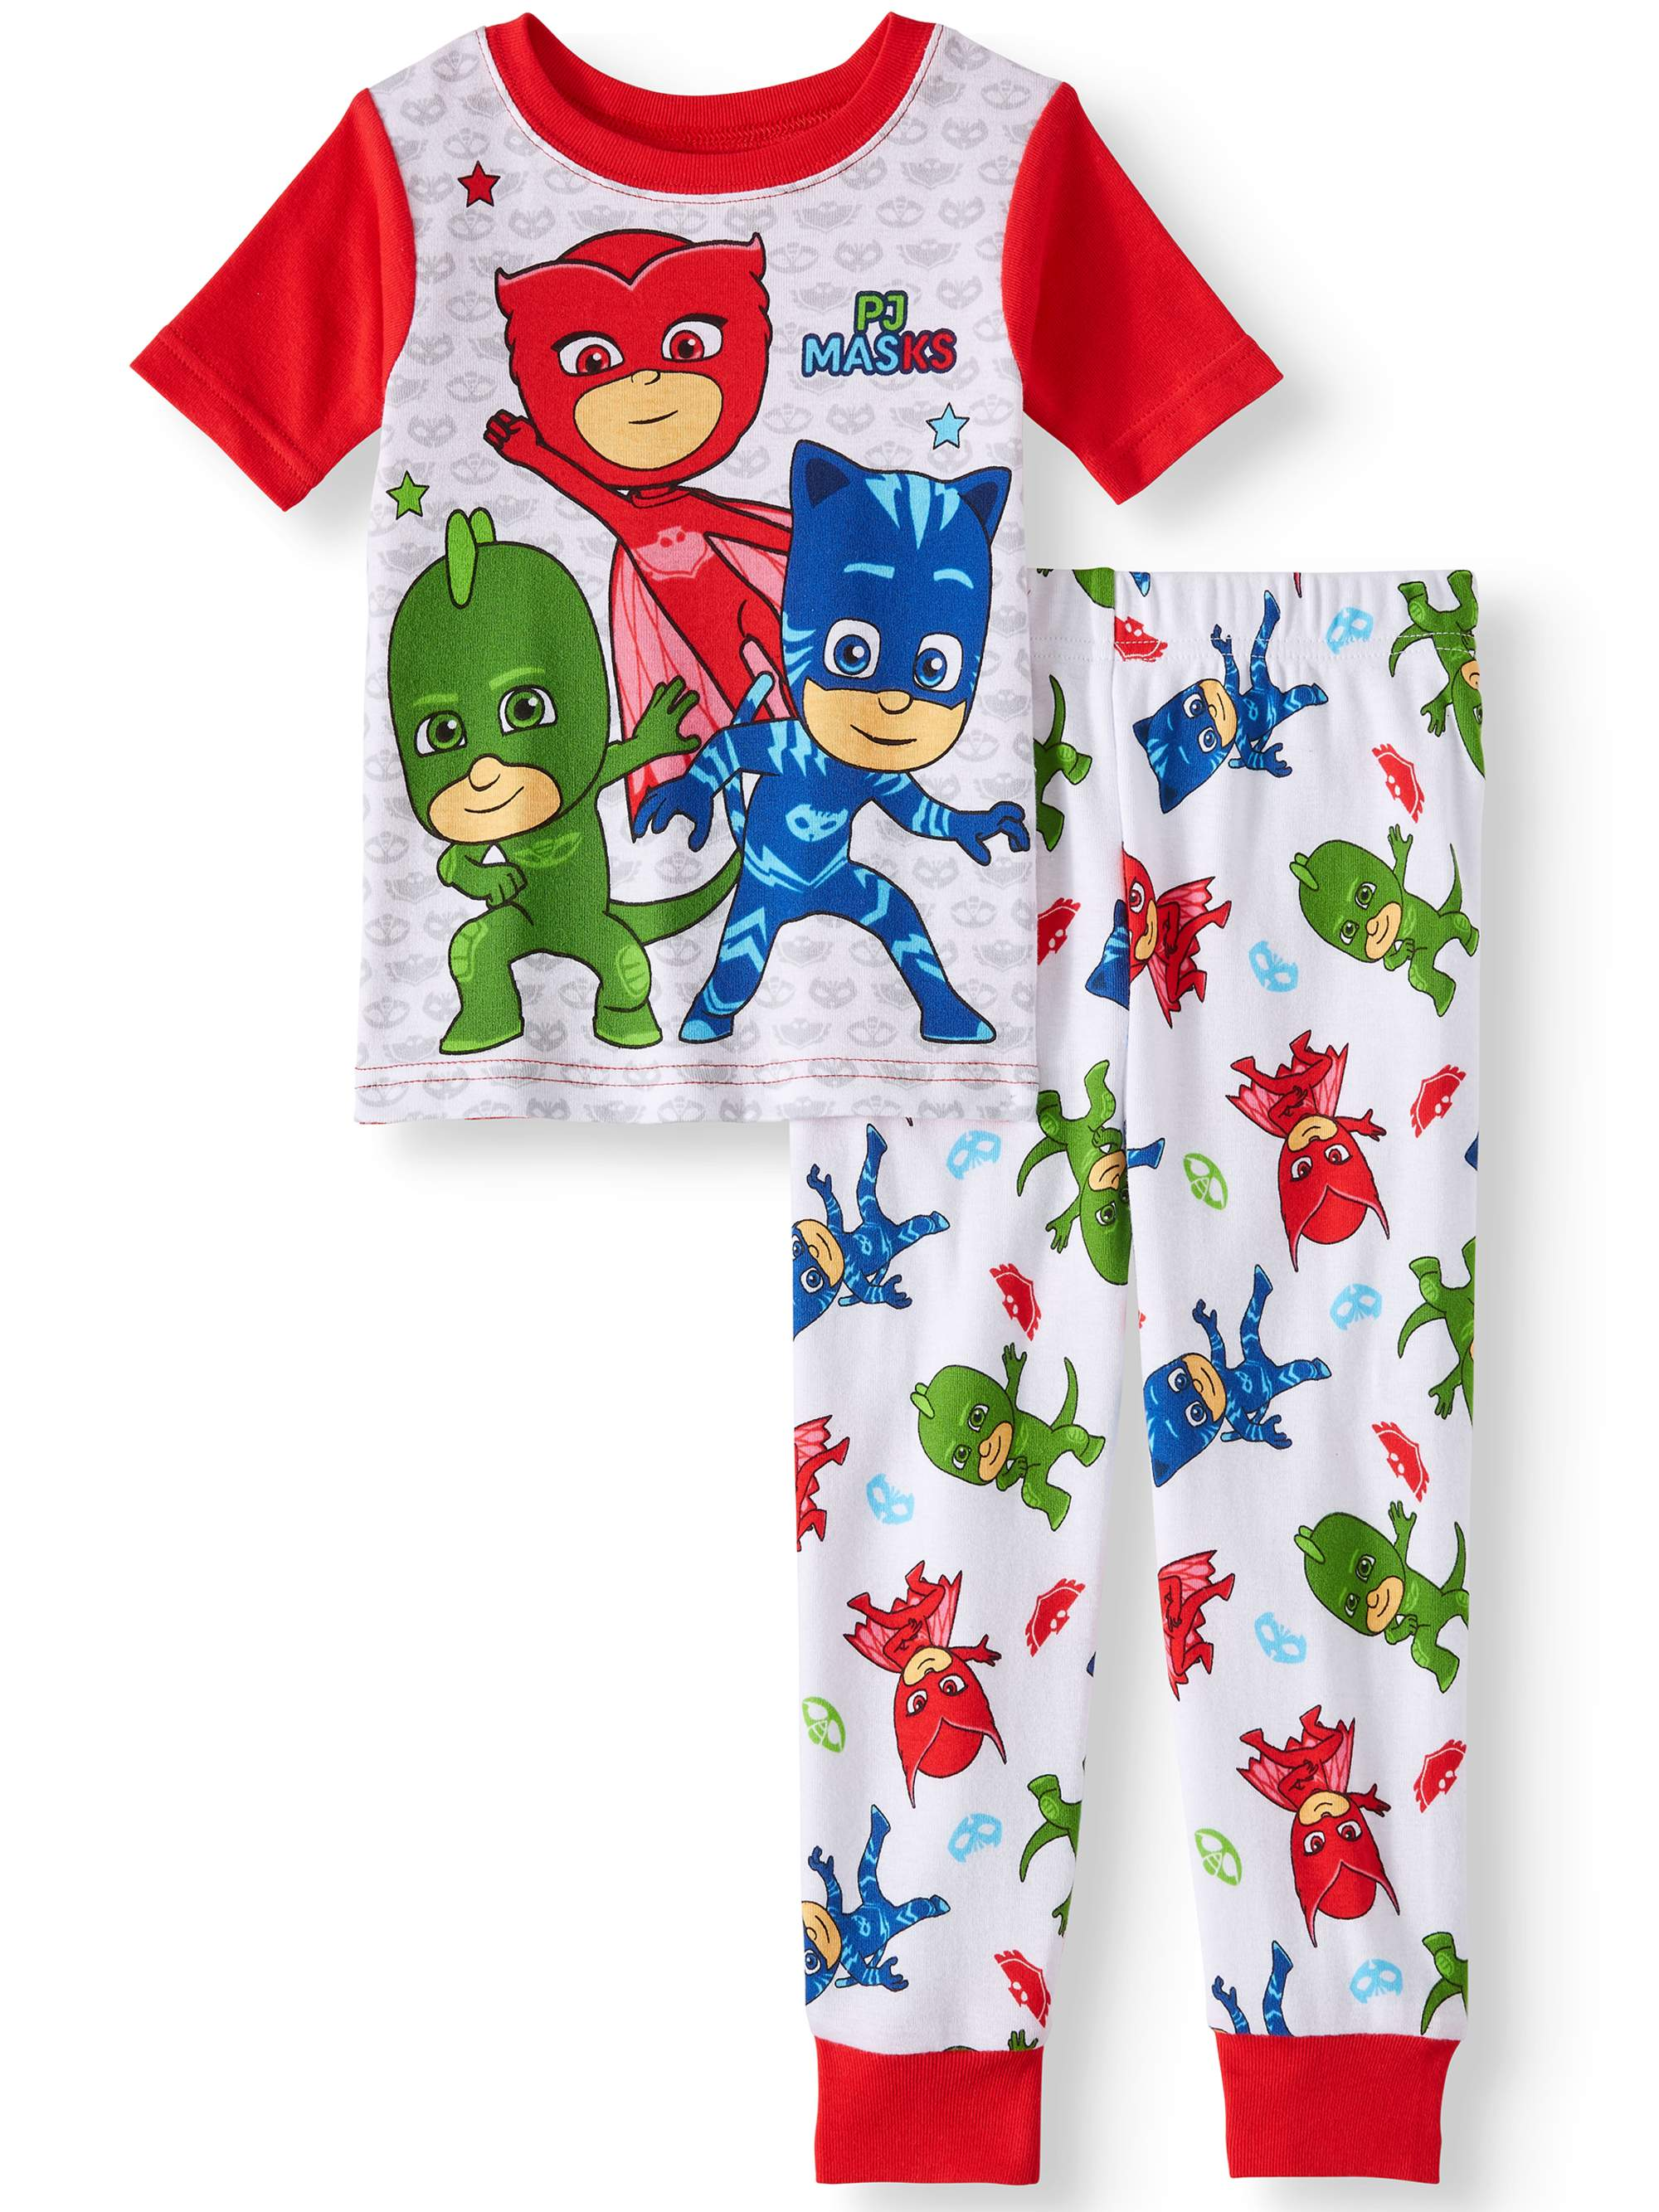 Cotton Tight Fit Pajamas, 2pc Set (Toddler Boys)